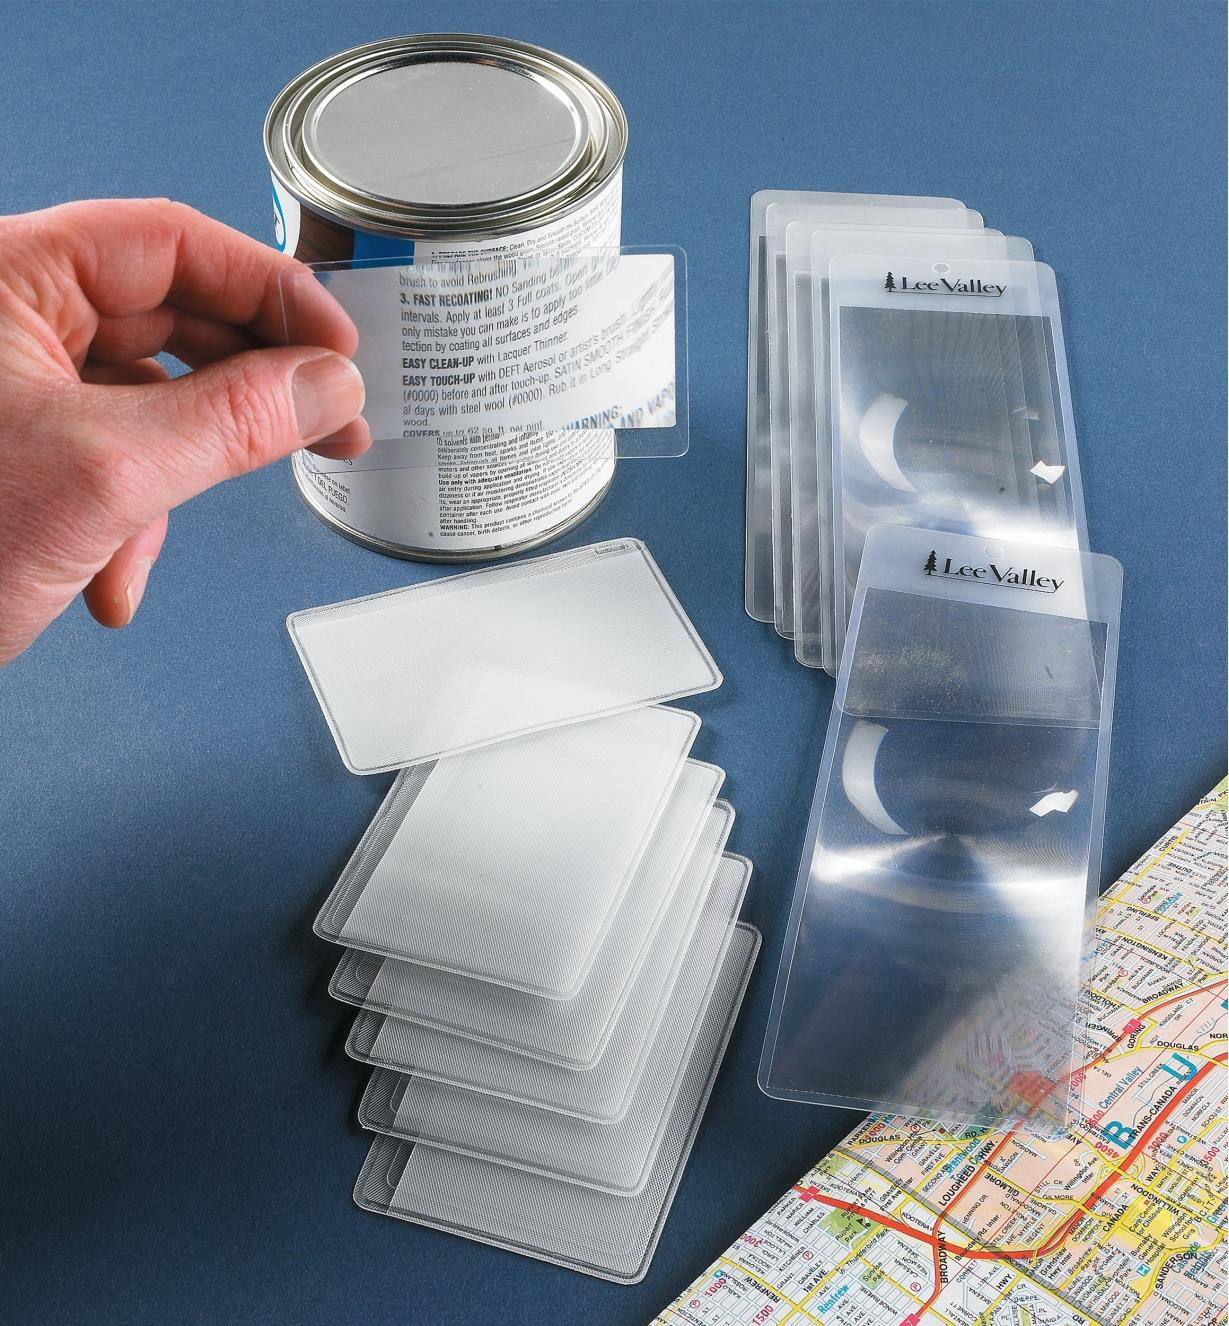 Six credit card magnifiers and six bookmark magnifiers spread on a table, beside a road map and a can with small writing on the back